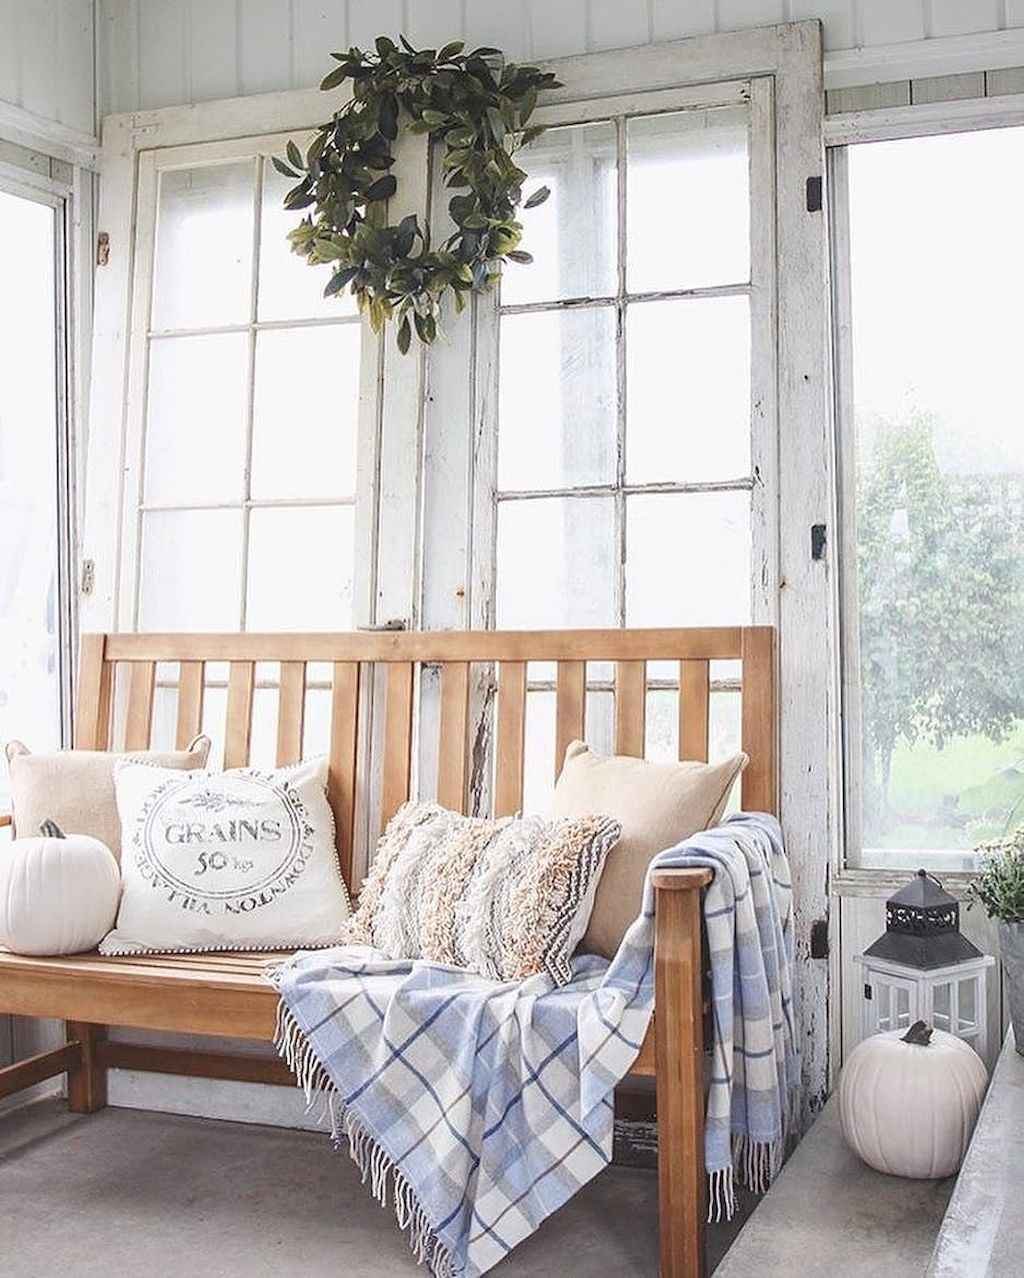 Clever college apartment decorating ideas on a budget (25)